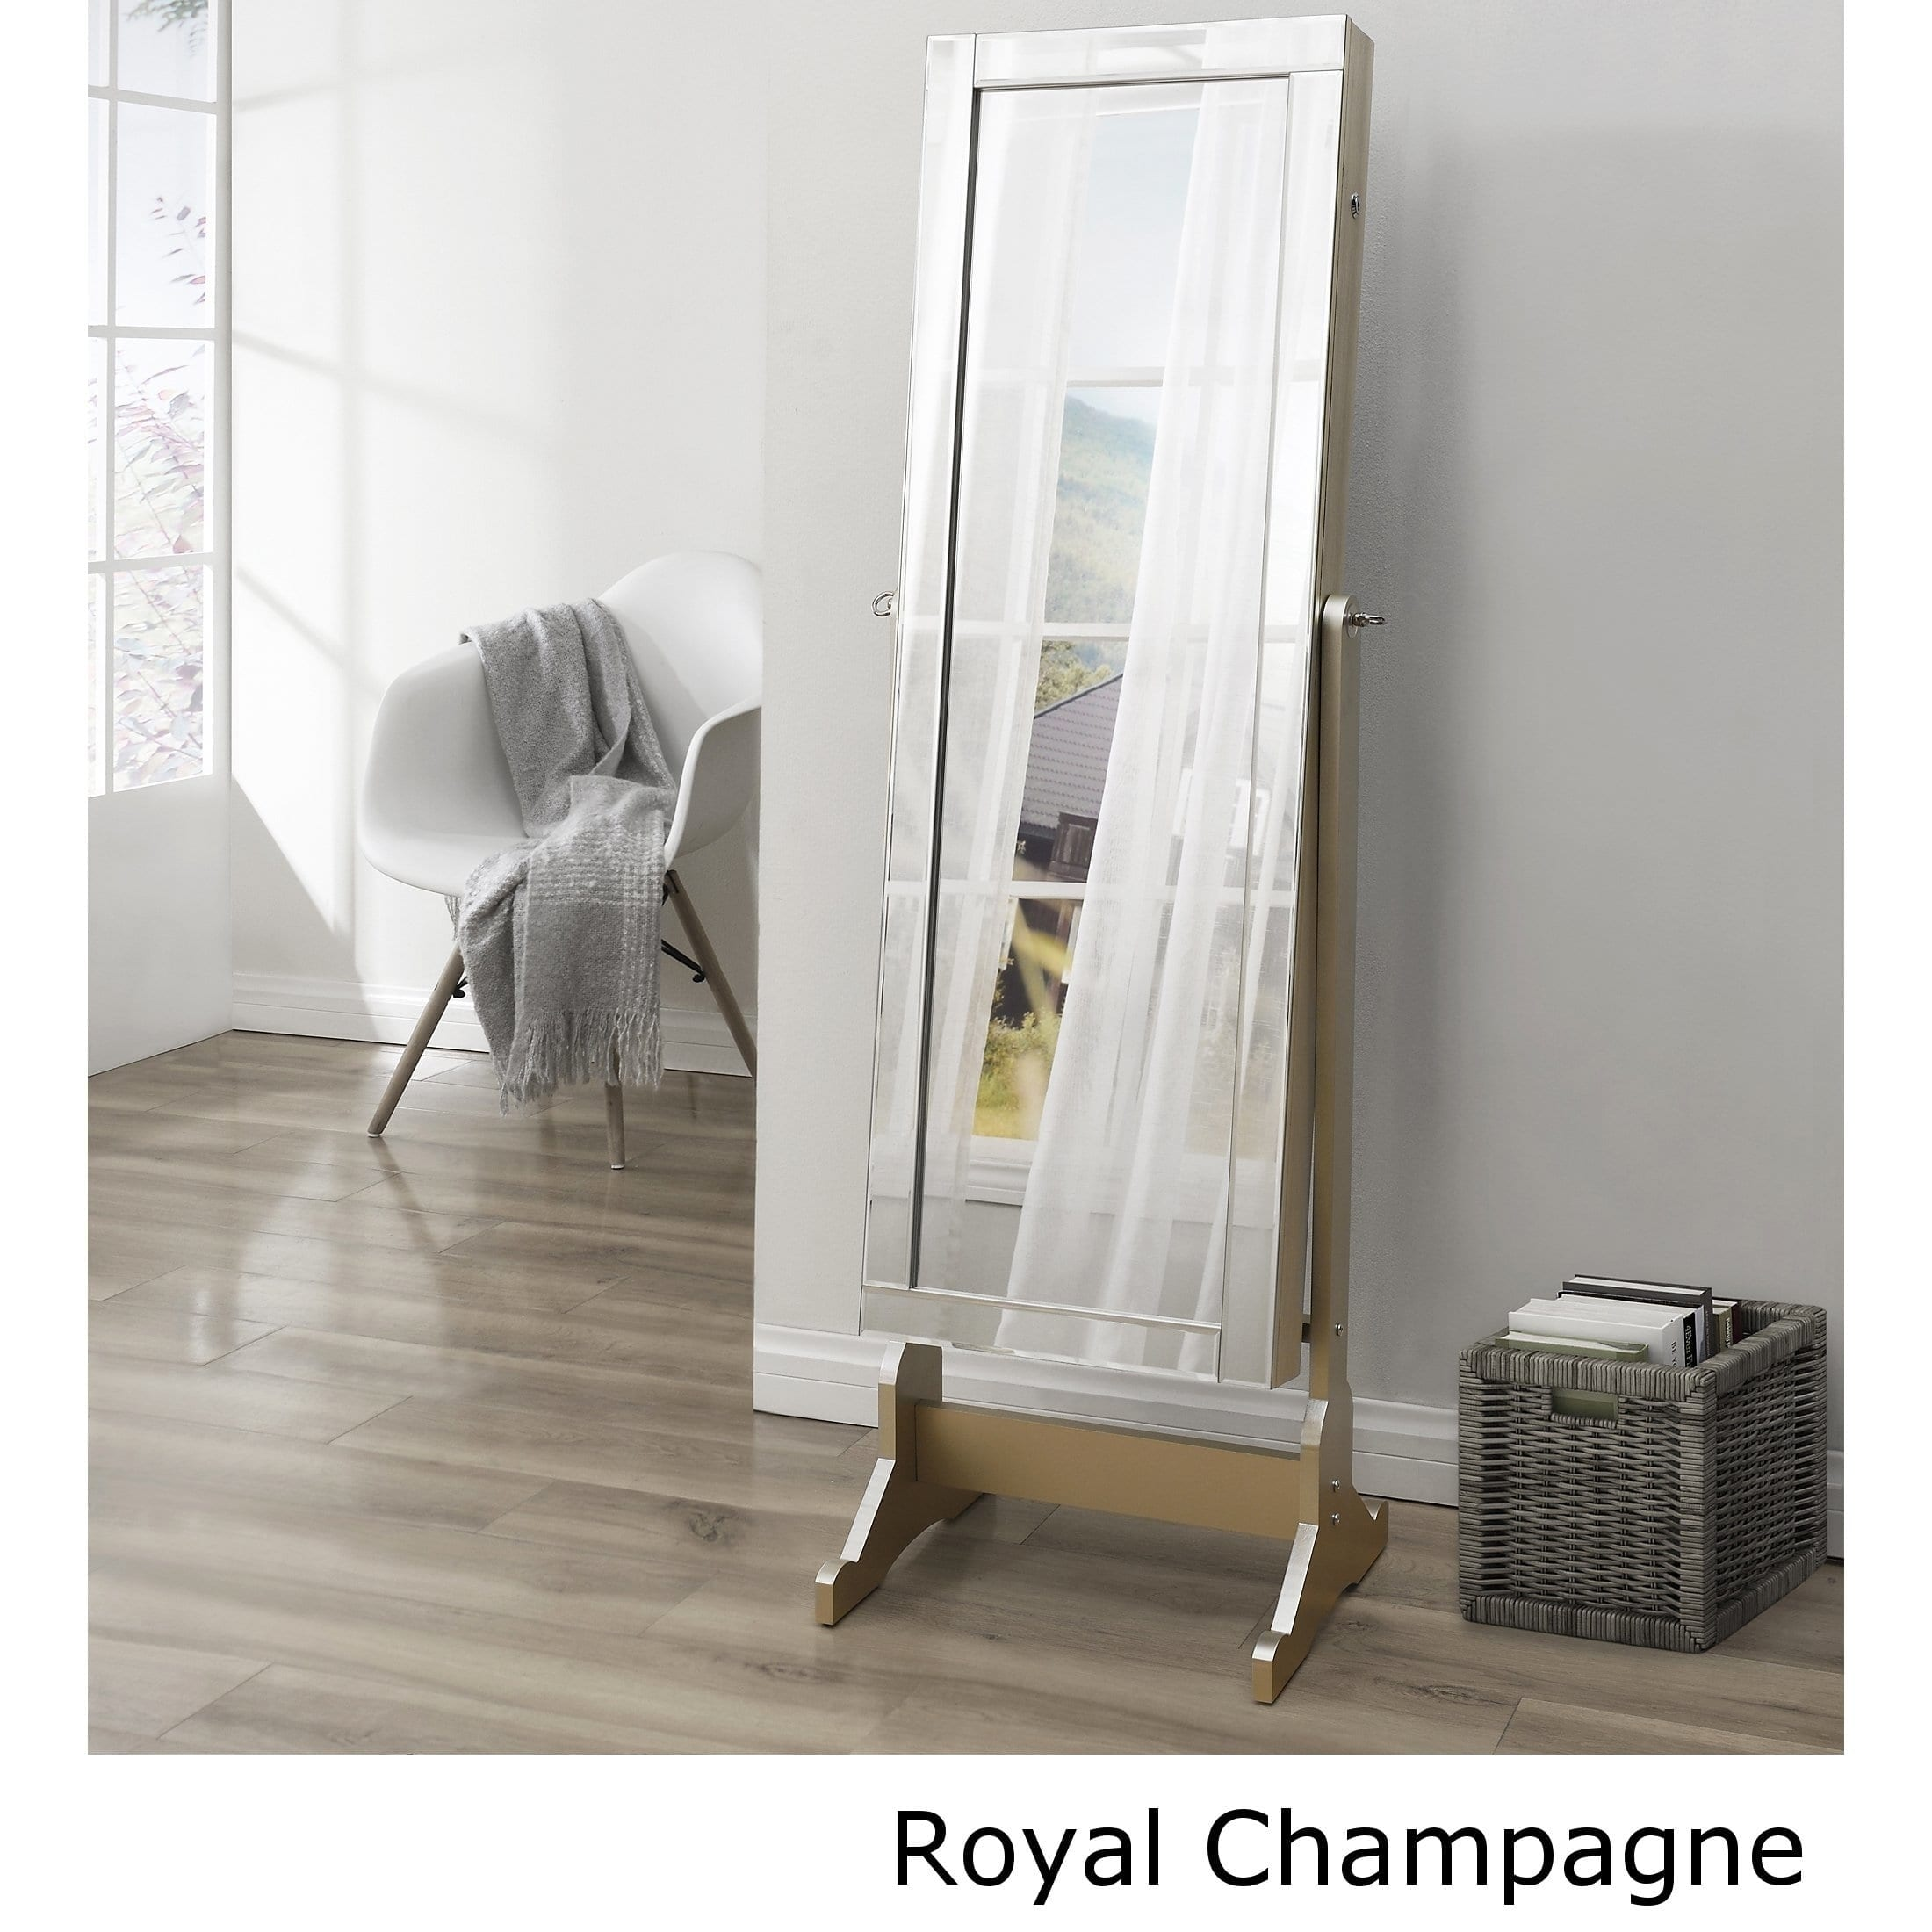 Full lenght mirror Modern Shimmer Cheval Fulllength Mirror Jewelry Armoire Overstock Shop Shimmer Cheval Fulllength Mirror Jewelry Armoire On Sale